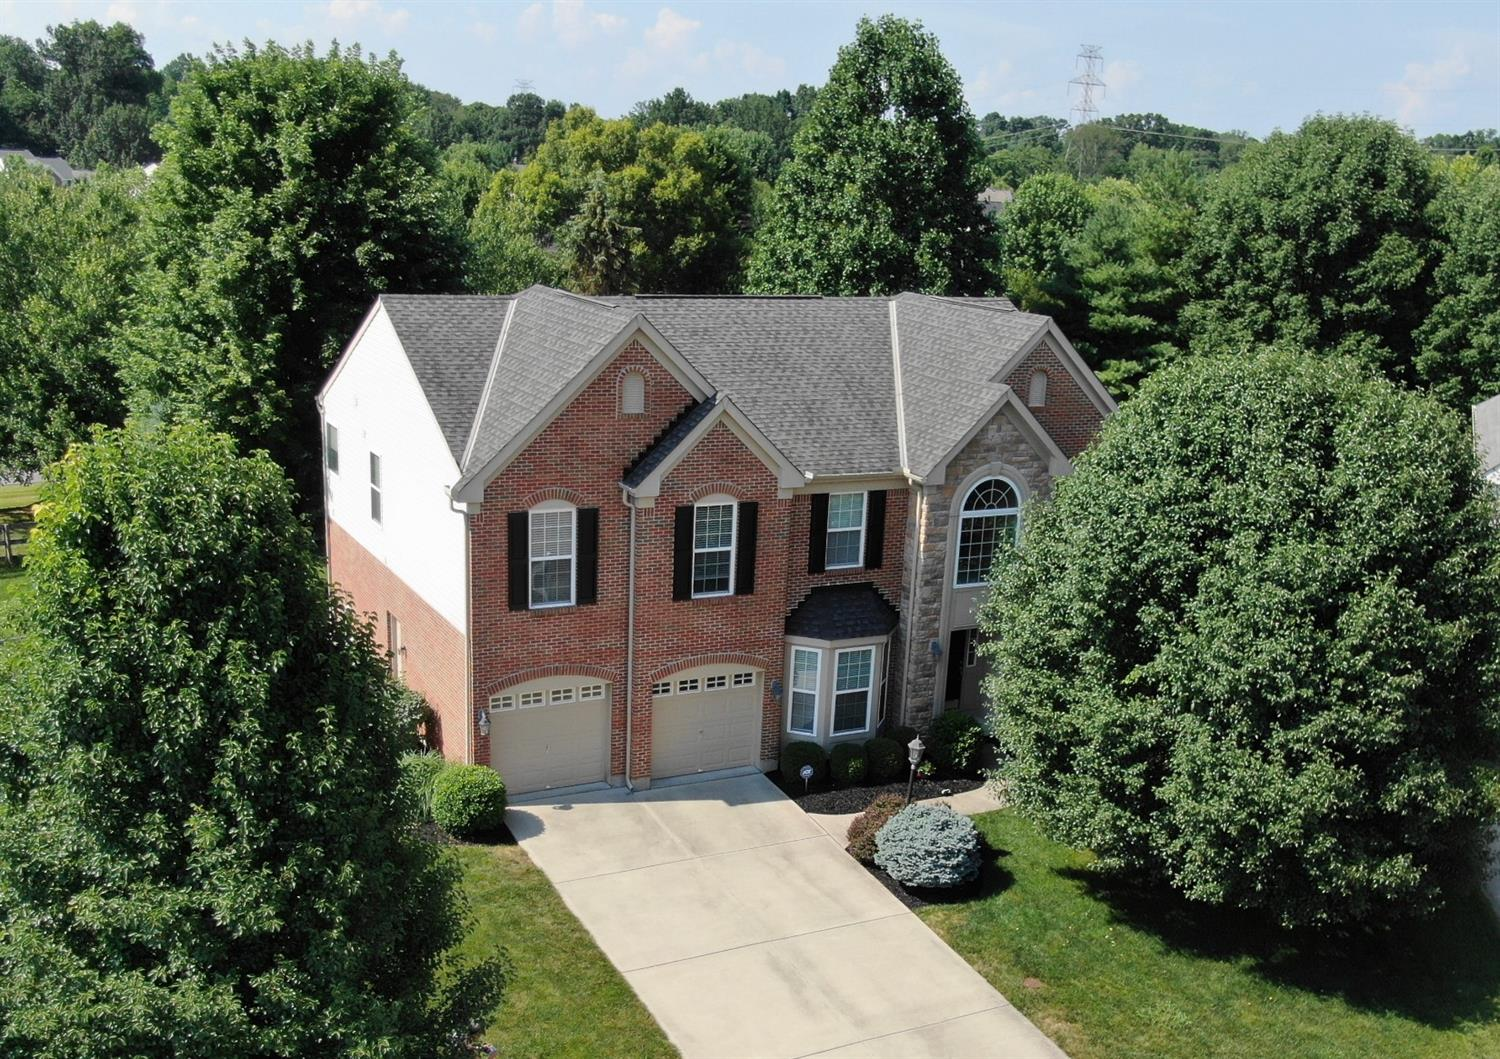 Property for sale at 191 Hounds Run, Loveland,  Ohio 45140